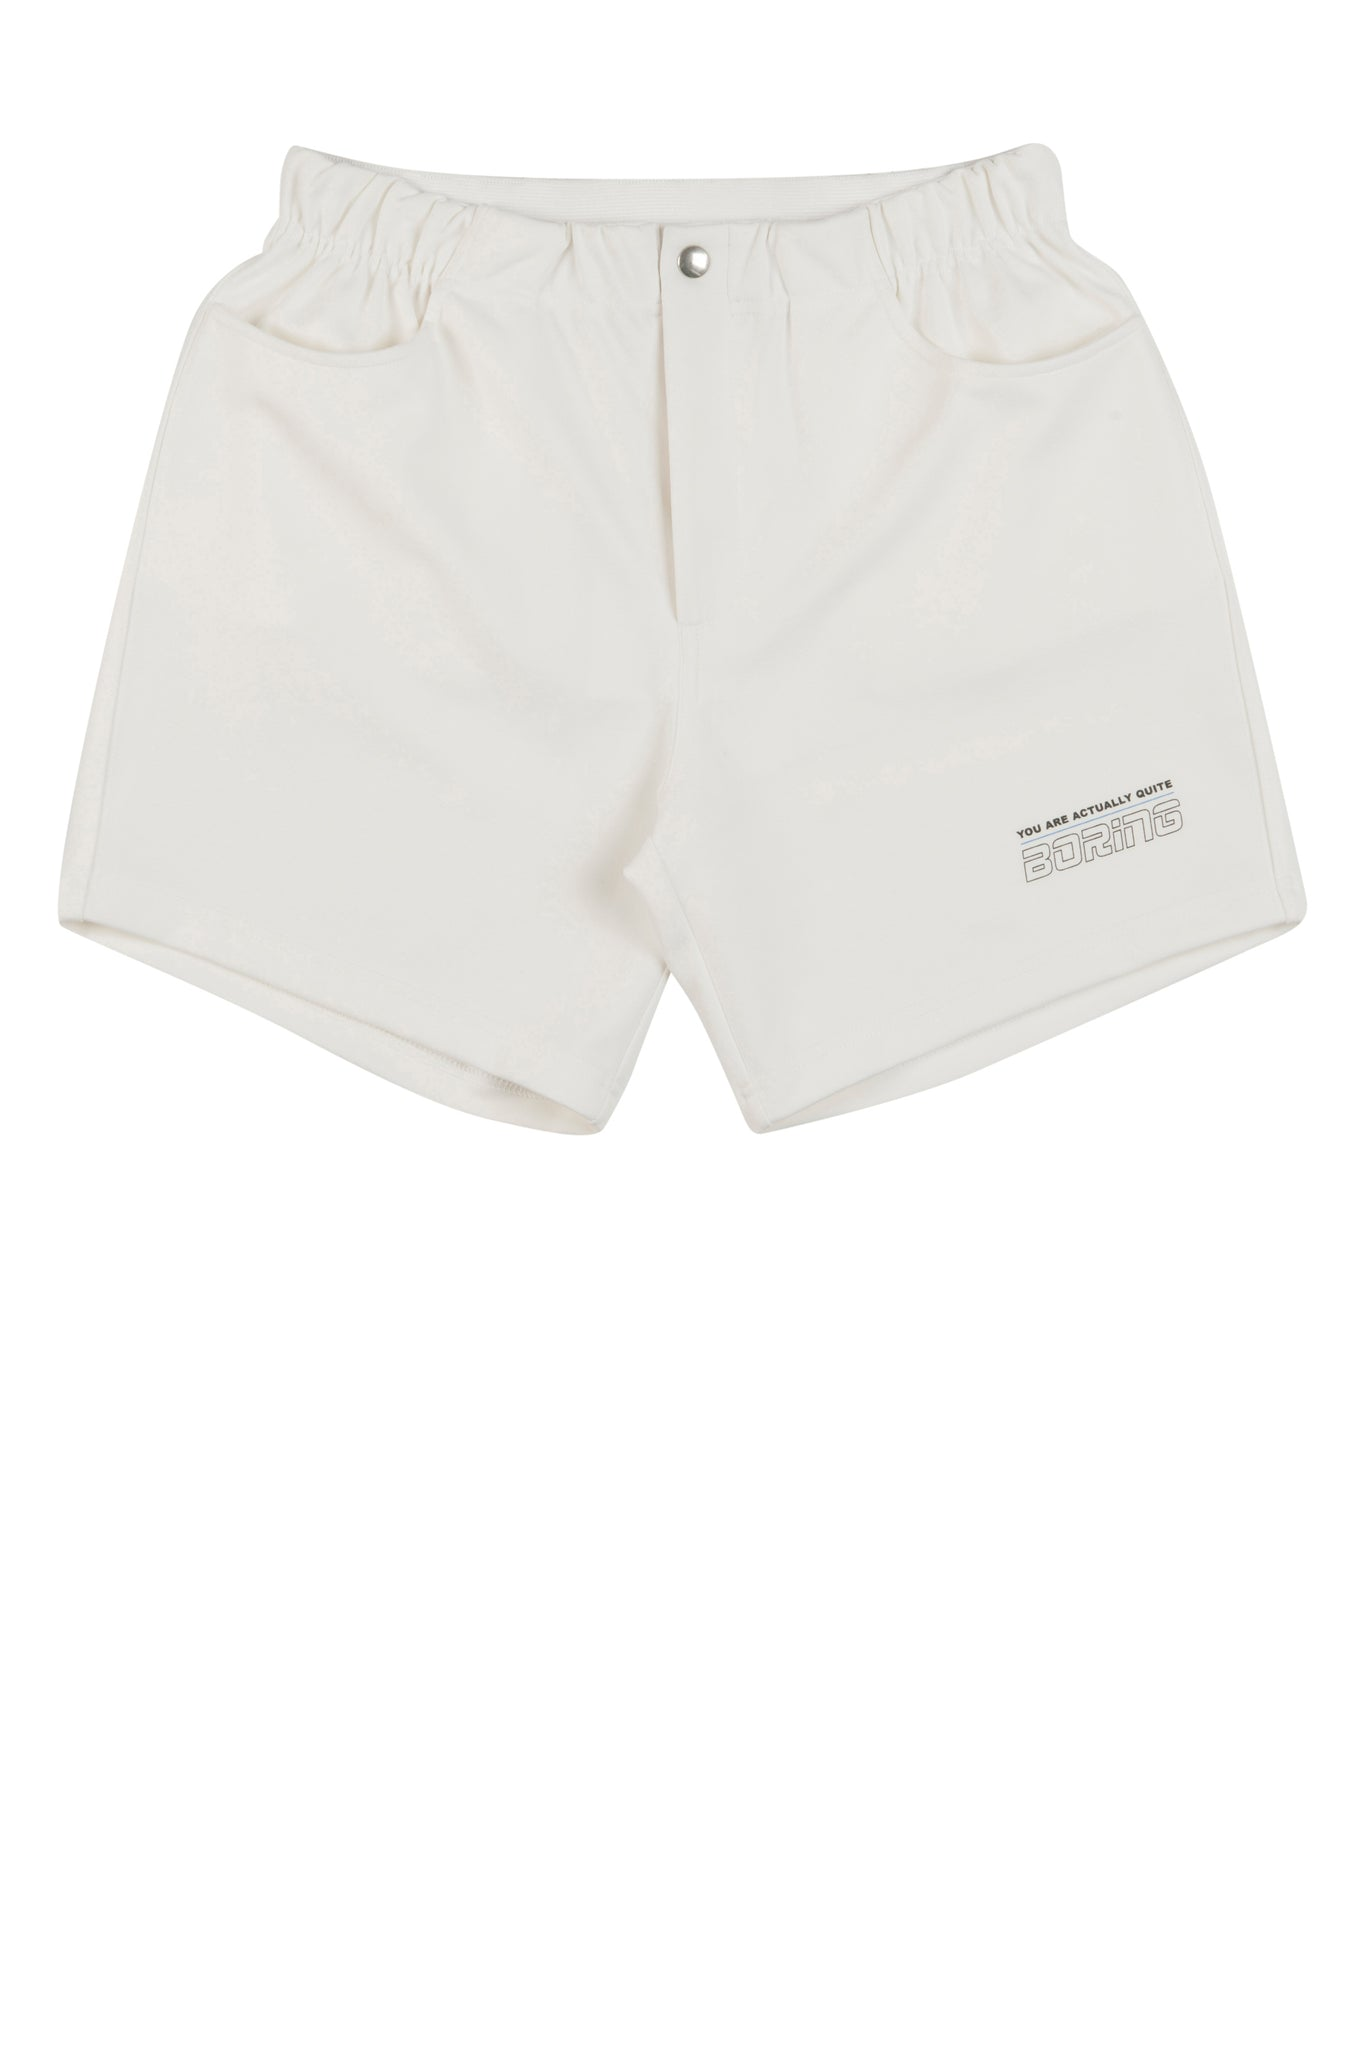 Tennis Shorts / White